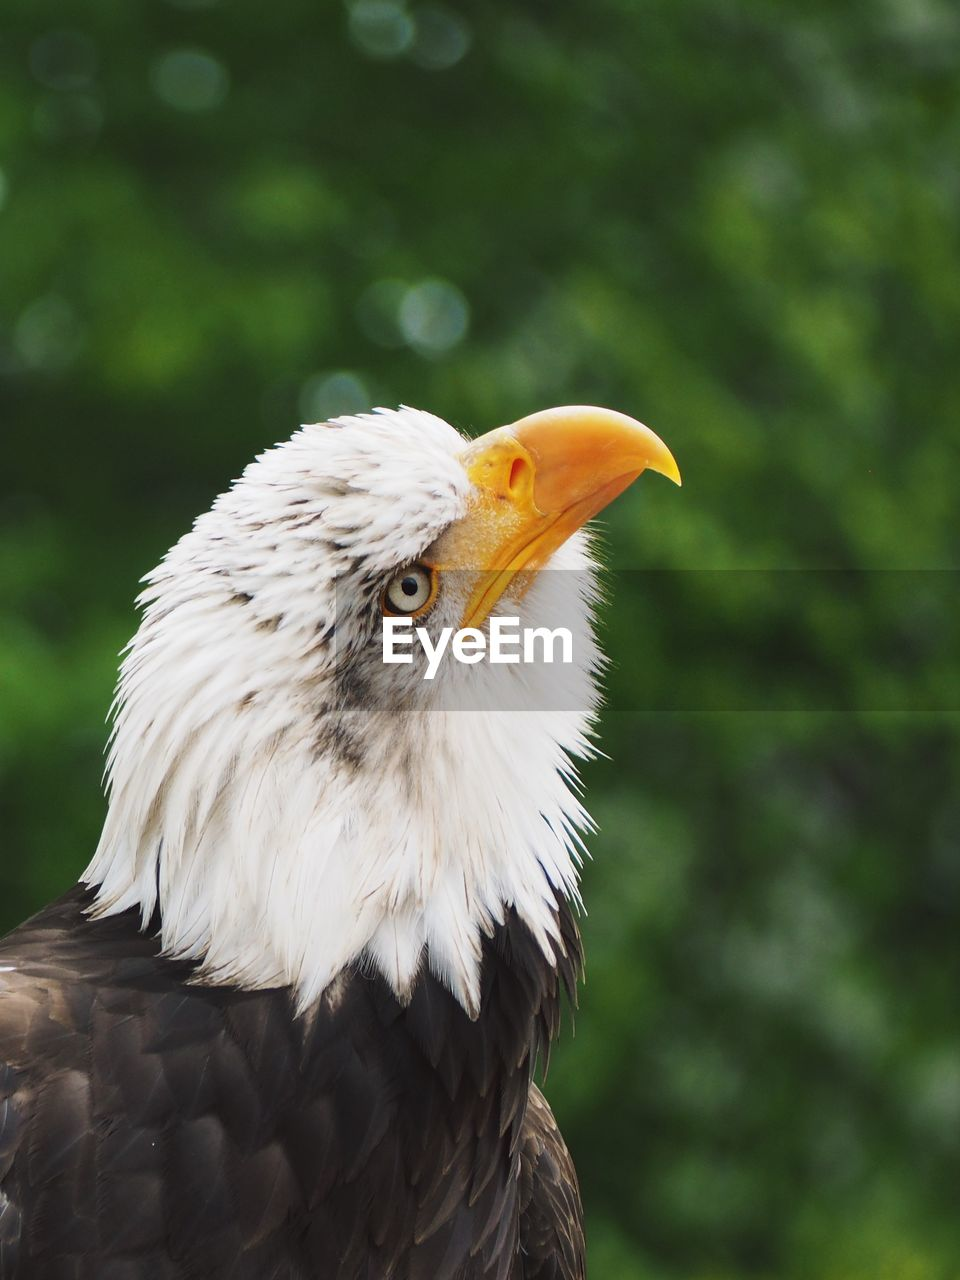 bird, animal, vertebrate, one animal, animal themes, focus on foreground, bird of prey, animals in the wild, animal wildlife, eagle, close-up, day, no people, beak, looking away, animal body part, looking, nature, eagle - bird, animal head, outdoors, animal eye, profile view